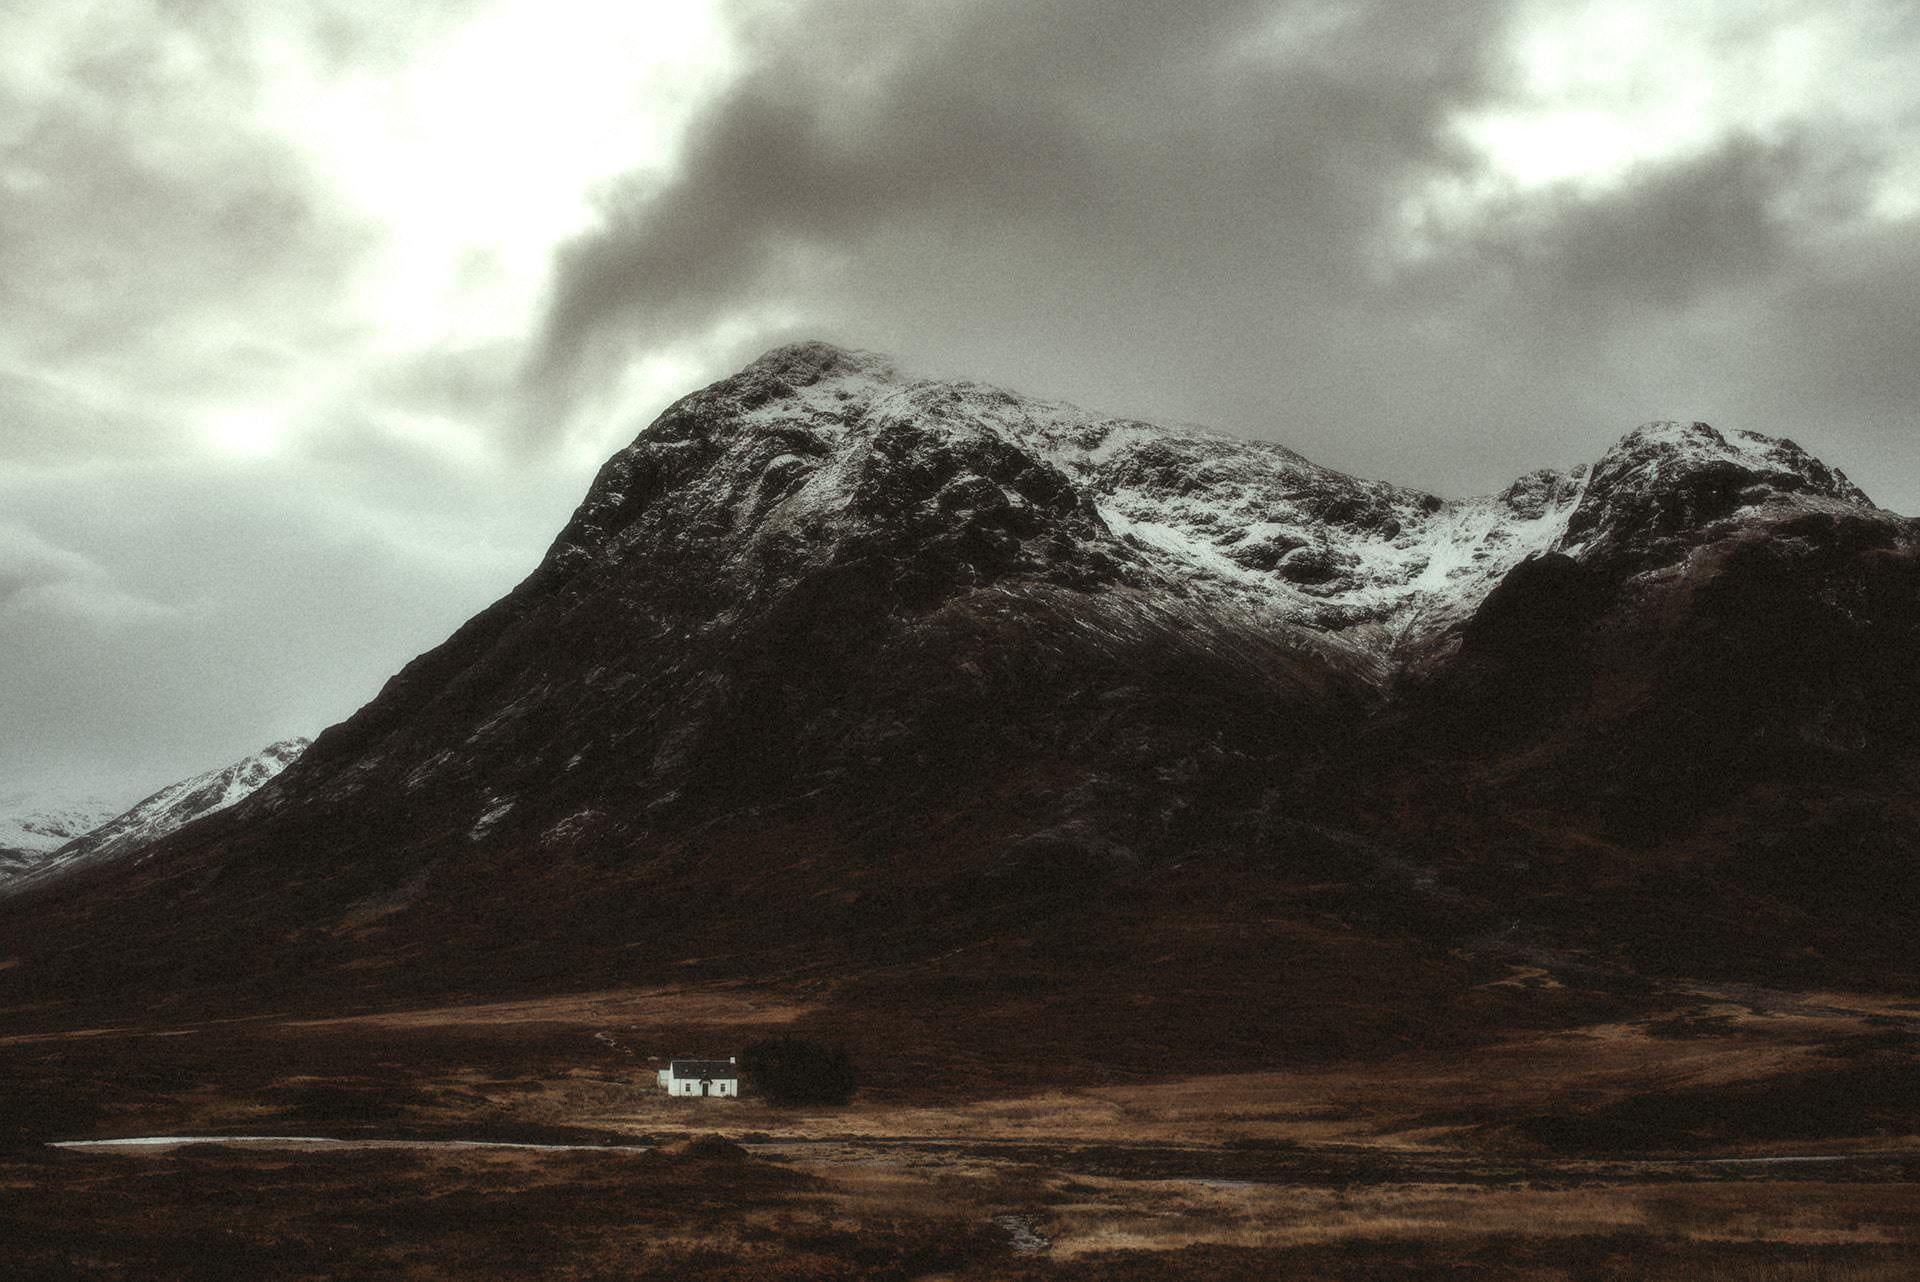 A cottage near the mountains in Glencoe